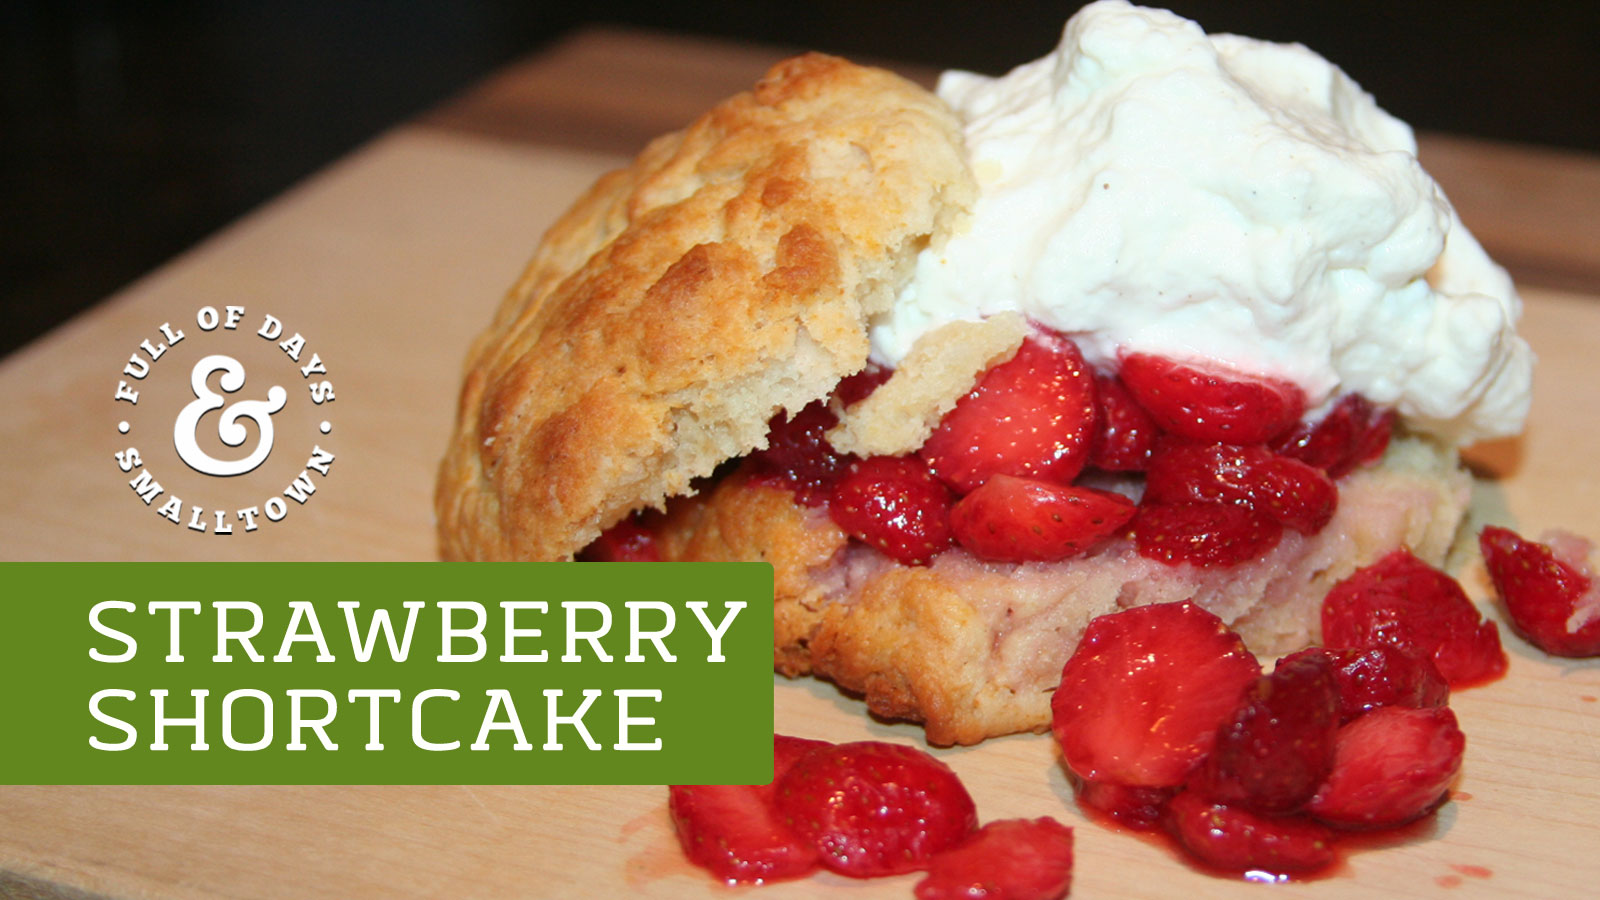 Strawberry Shortcake Recipe Full of Days